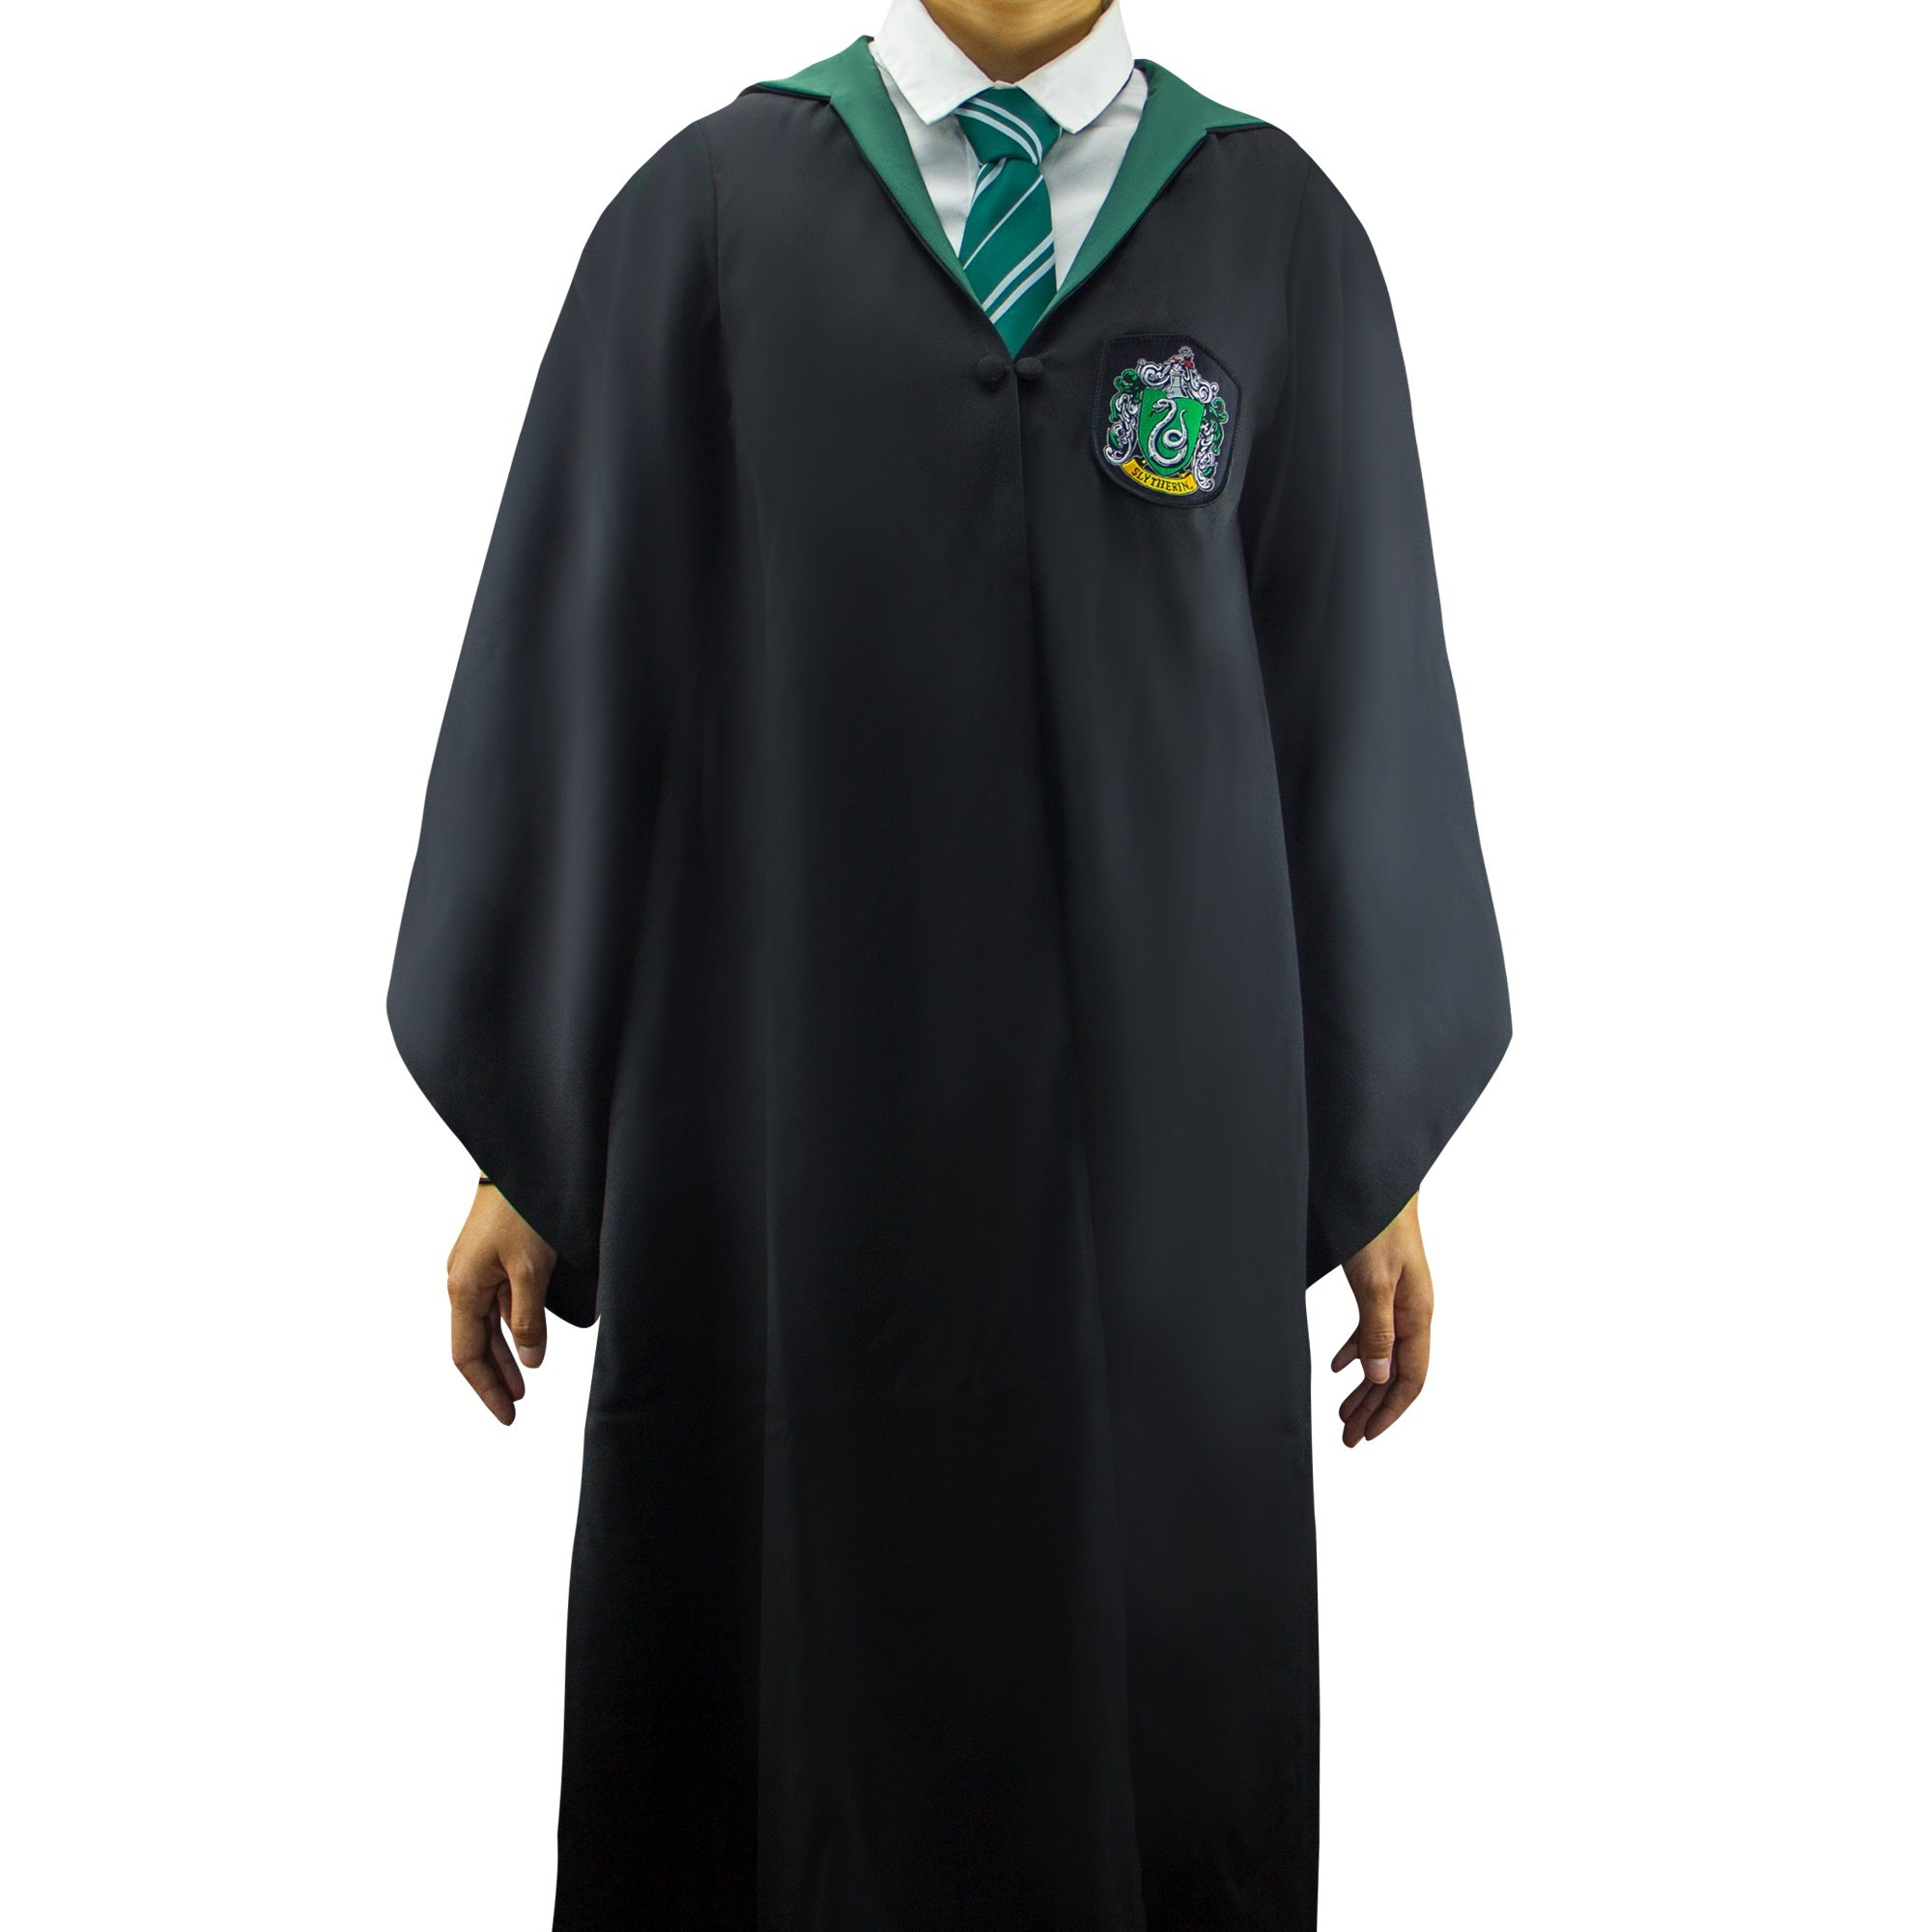 Harry Potter Authentic Tailored Wizard Robes Cloak by Cinereplicas by Cinereplicas (Image #4)